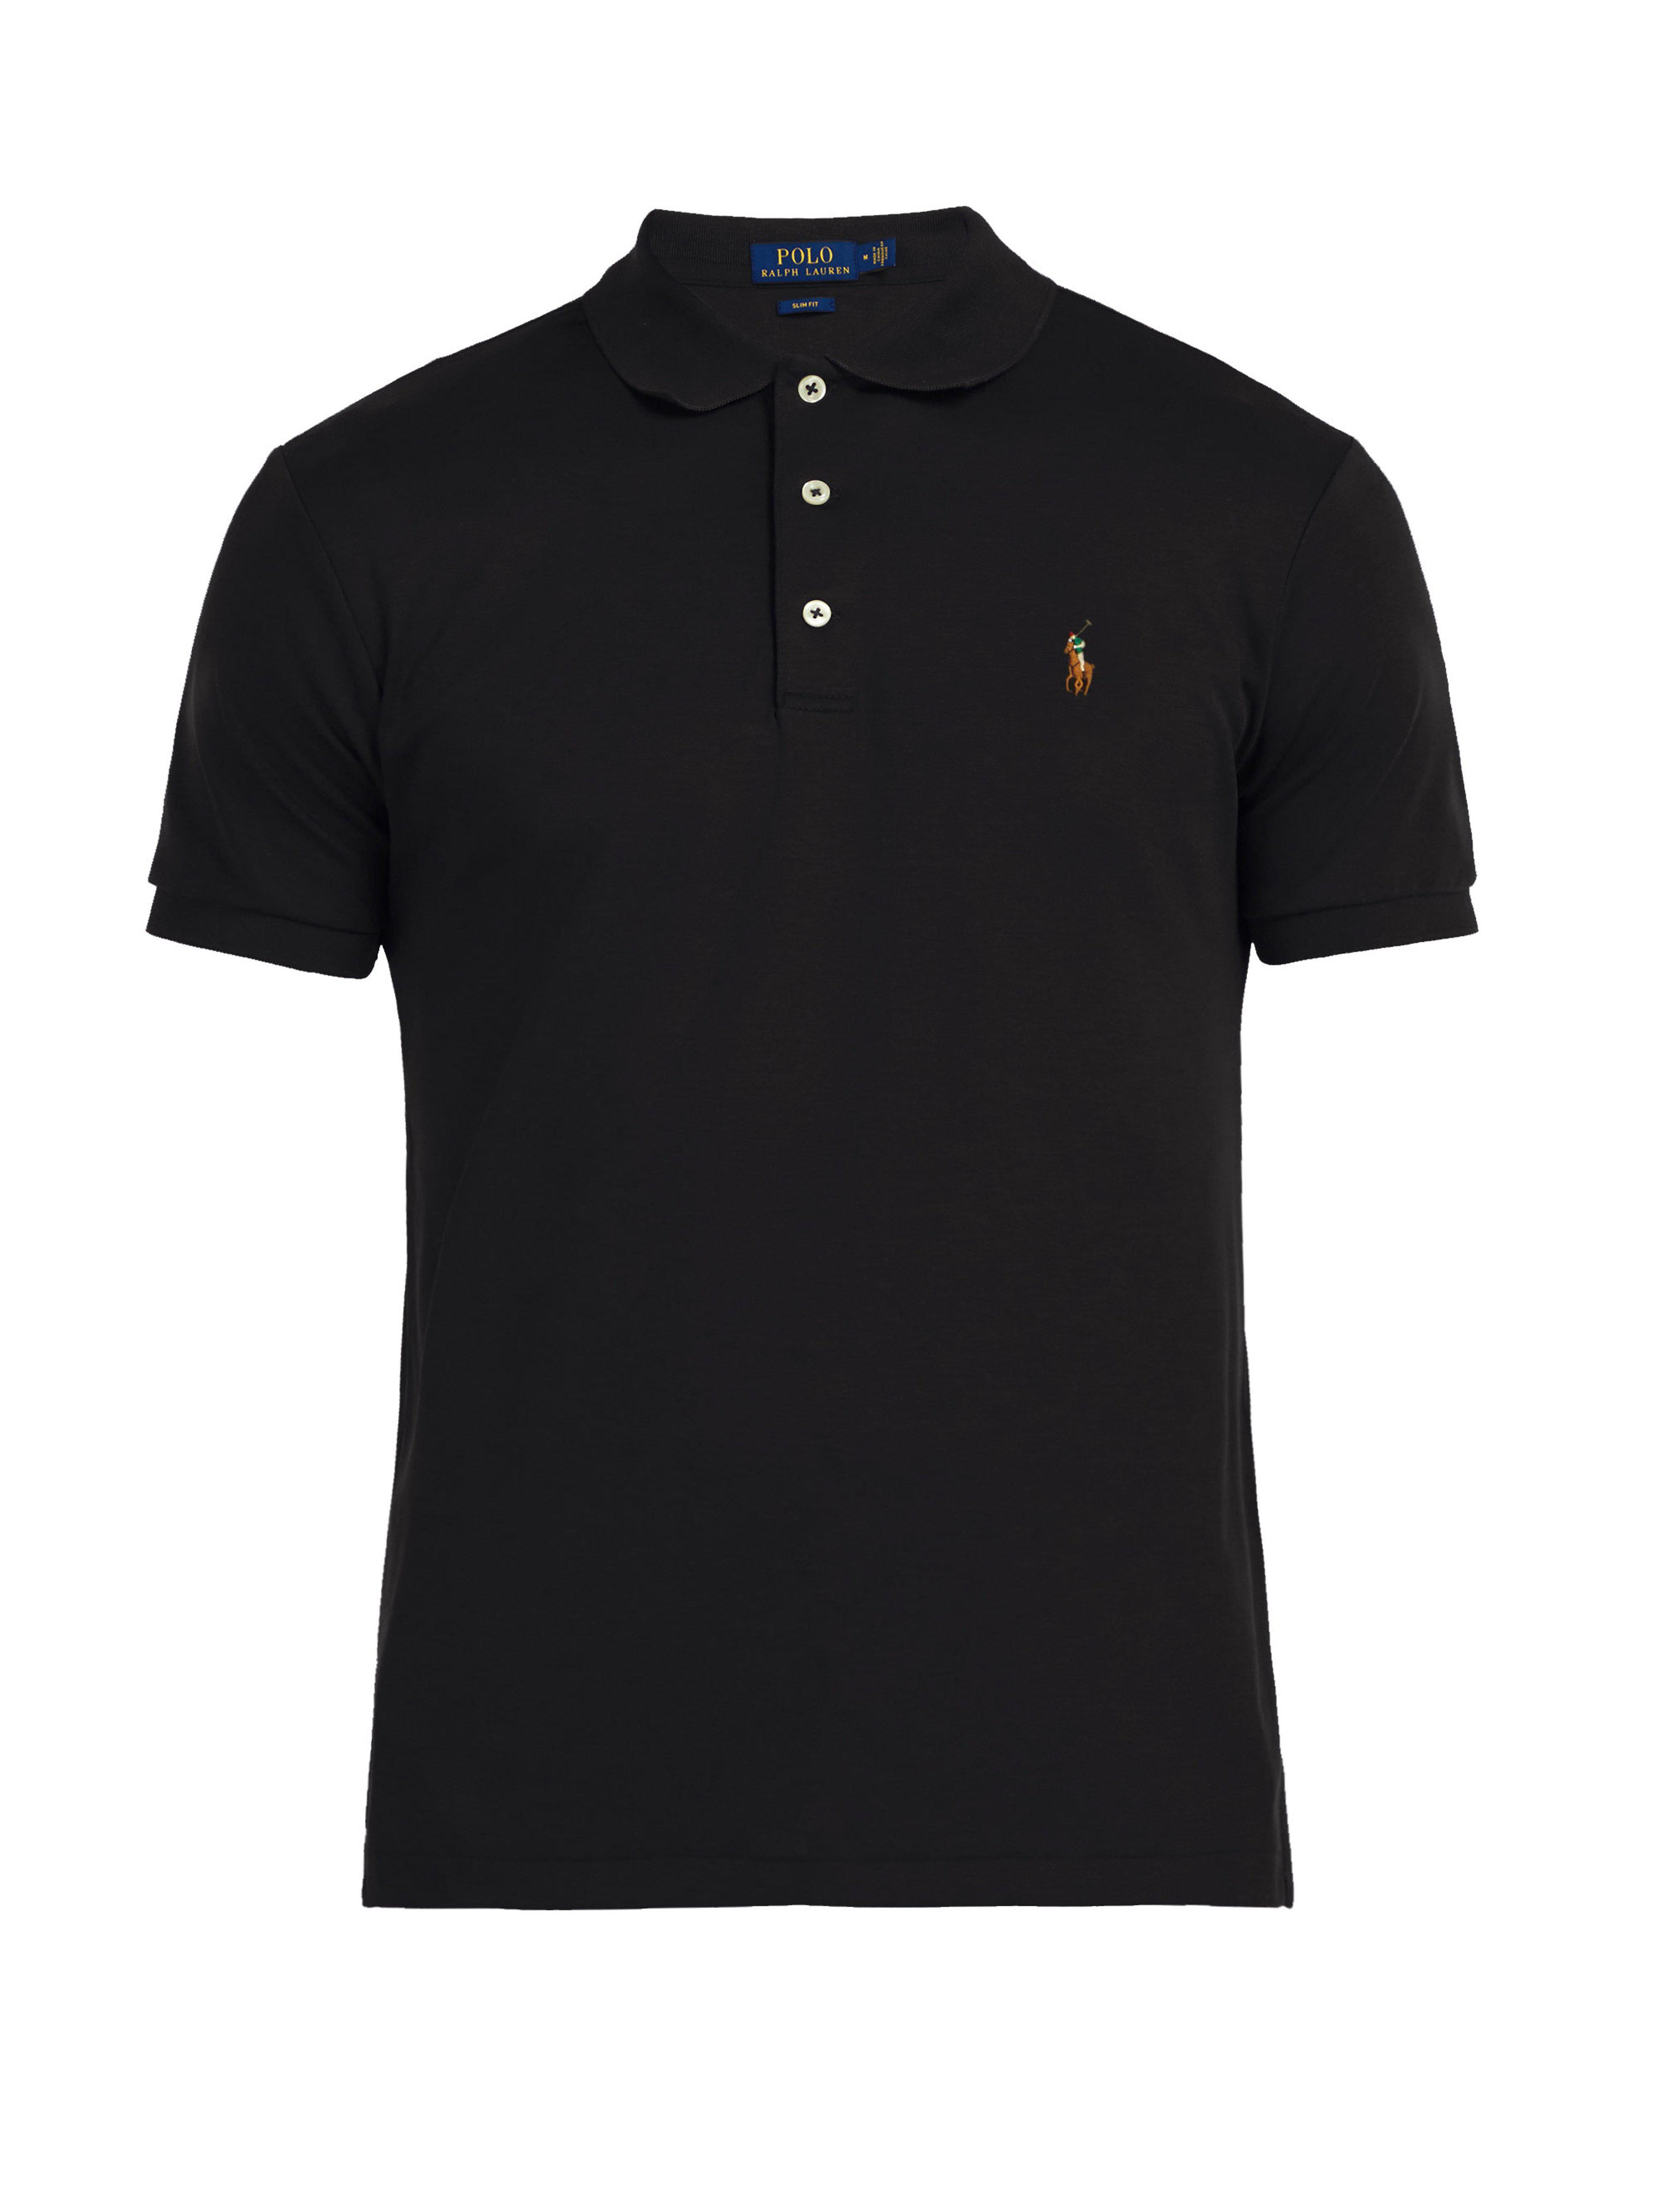 597f4ae8 Polo Ralph Lauren Slim Fit Cotton Polo Shirt in Black for Men - Lyst